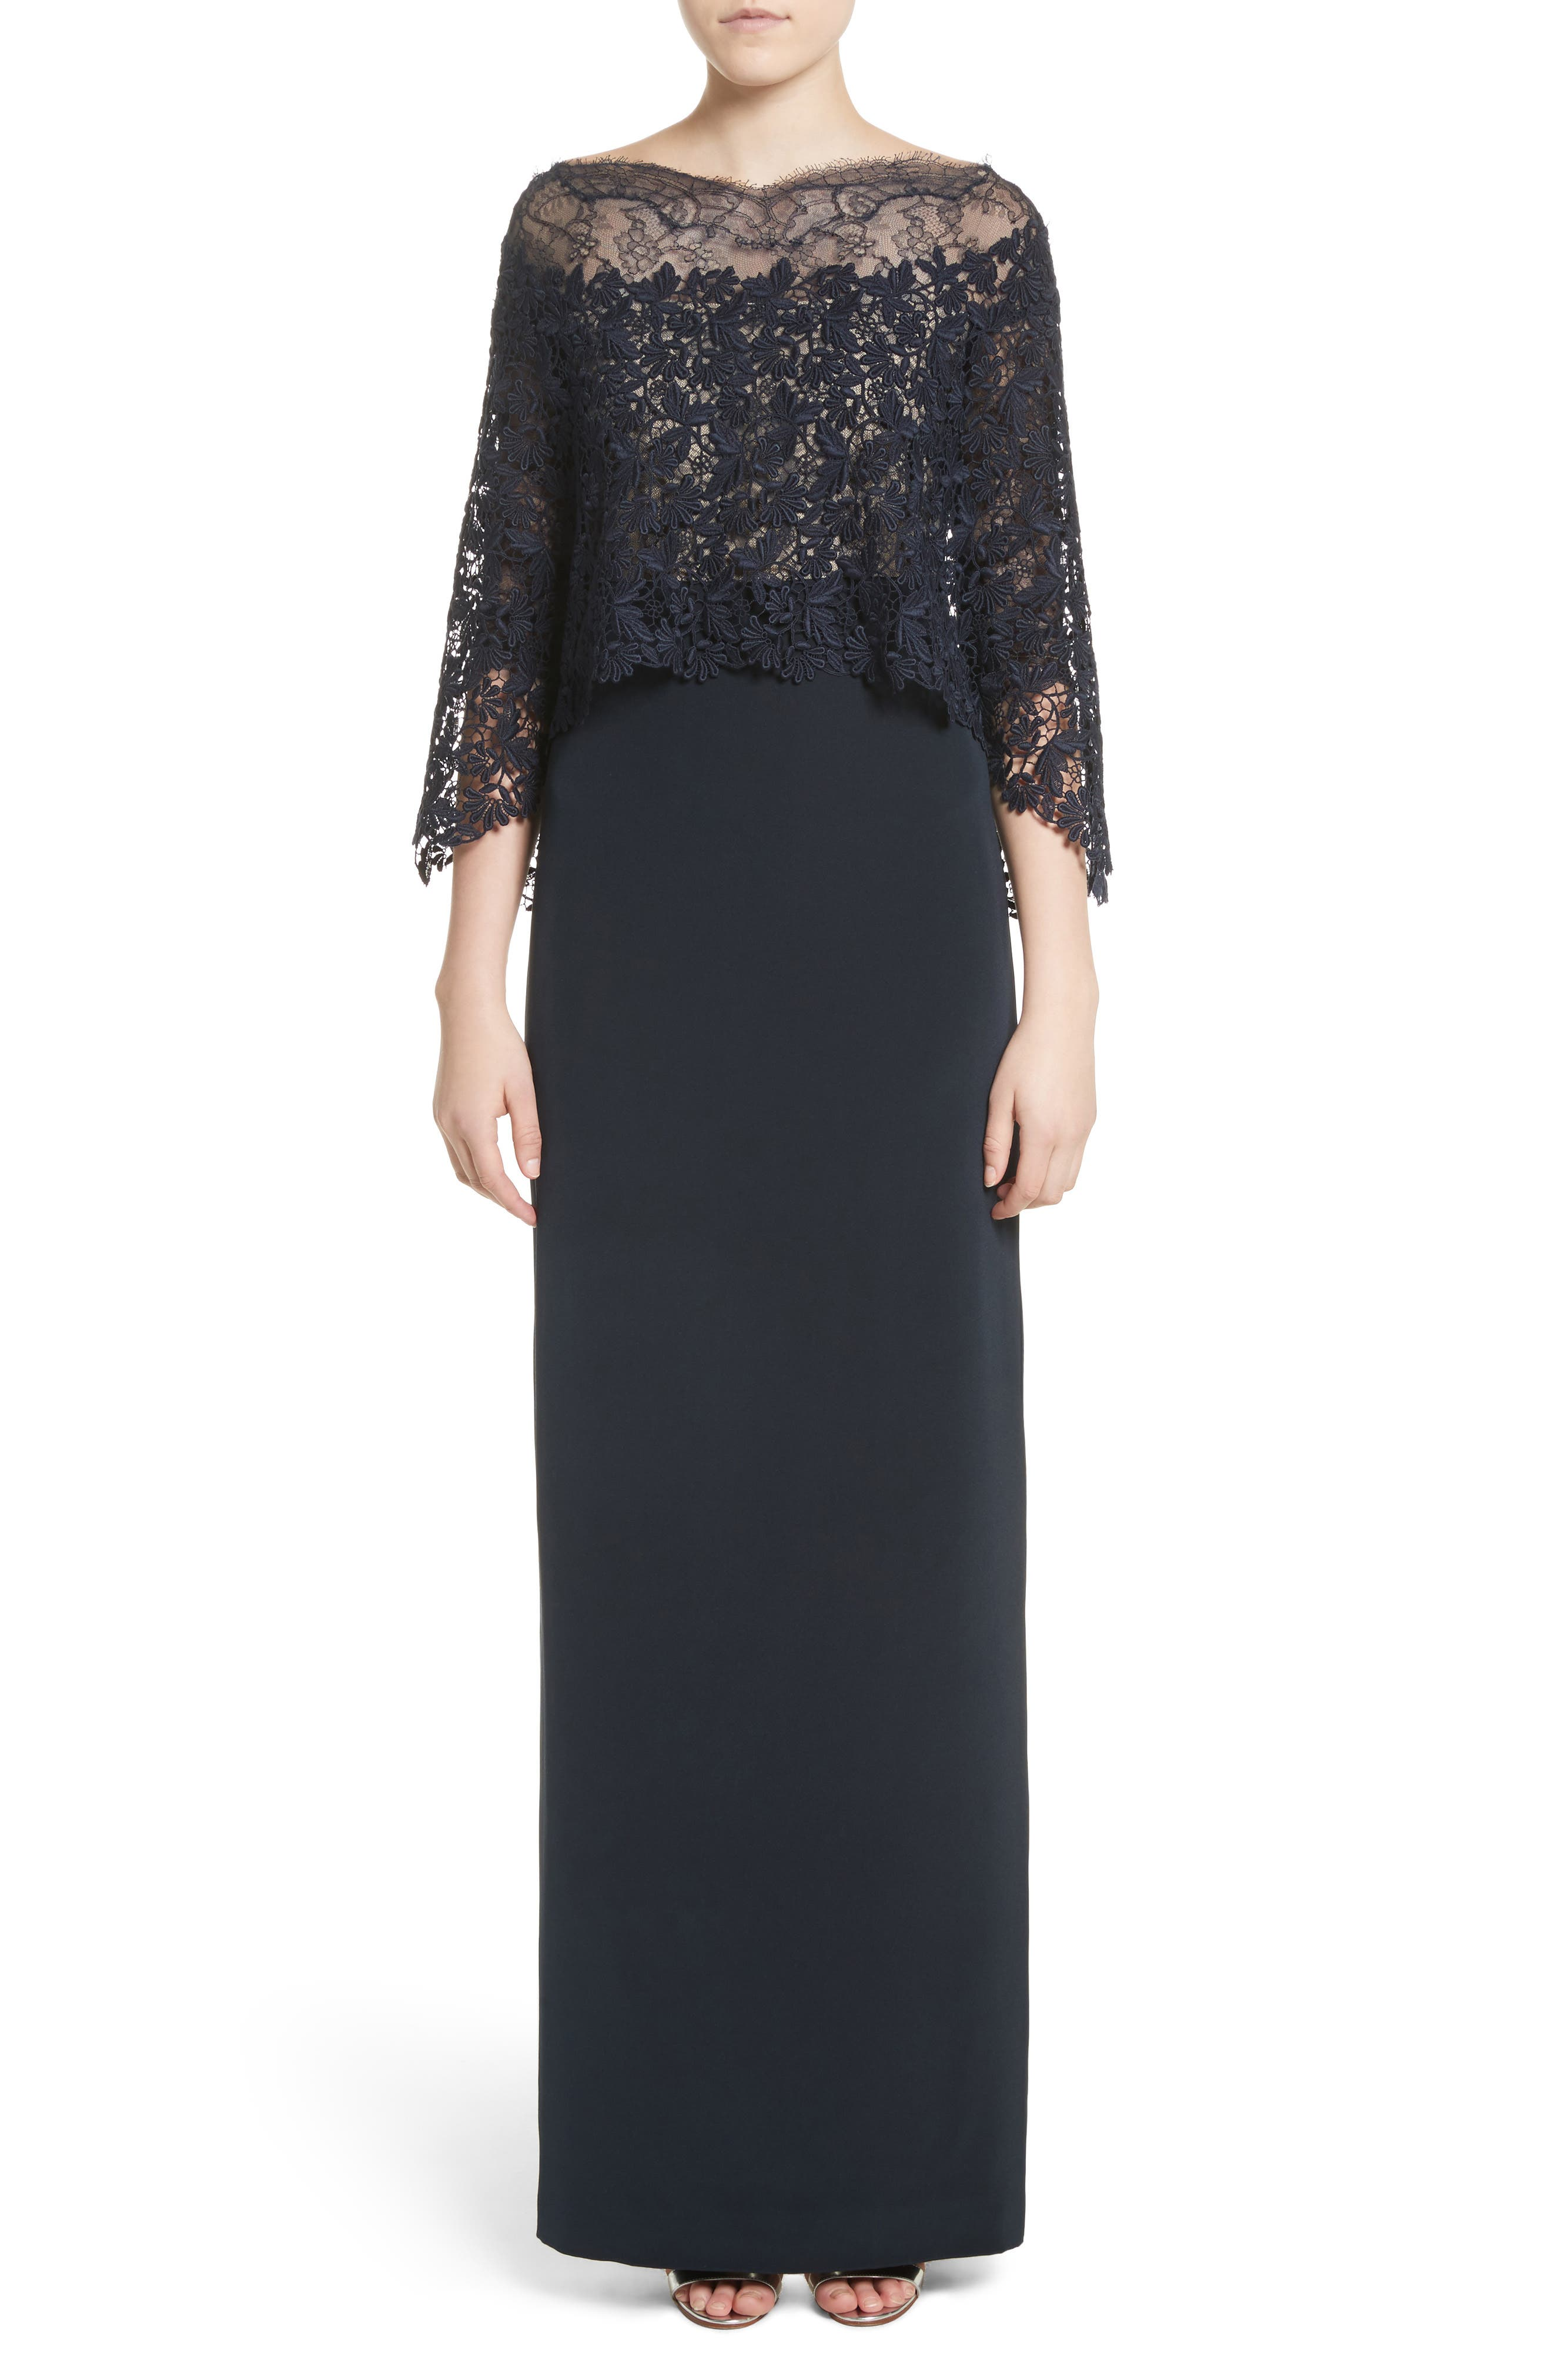 Monique Lhuillier Column Gown with Integrated Lace Capelet